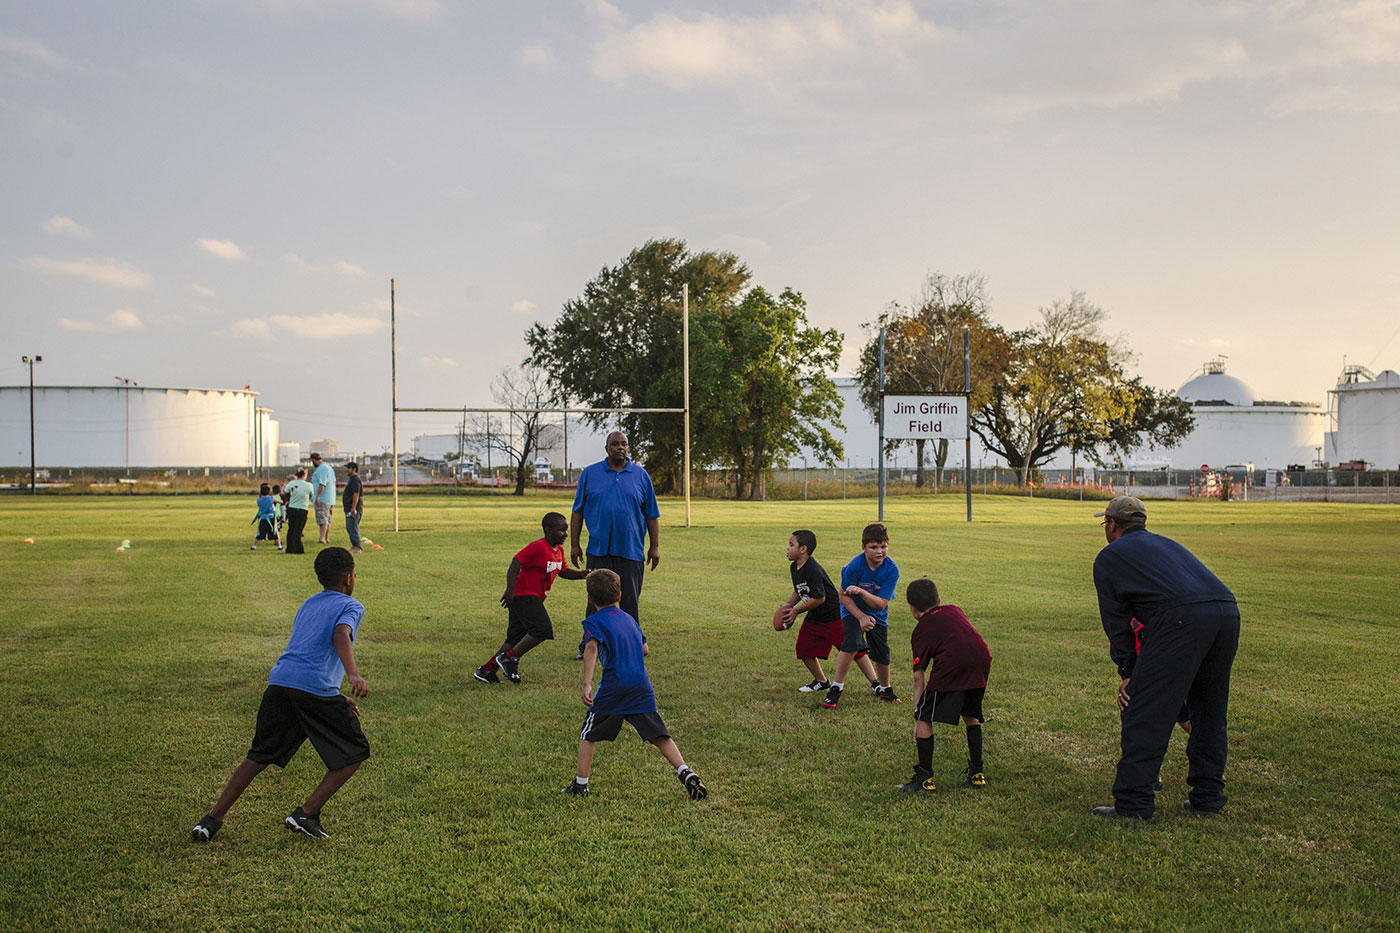 A Westlake Recreation League football team practices at Jim Griffin Field, across the street from the Phillips 66 refinery, Westlake, La., Oct. 22, 2015.